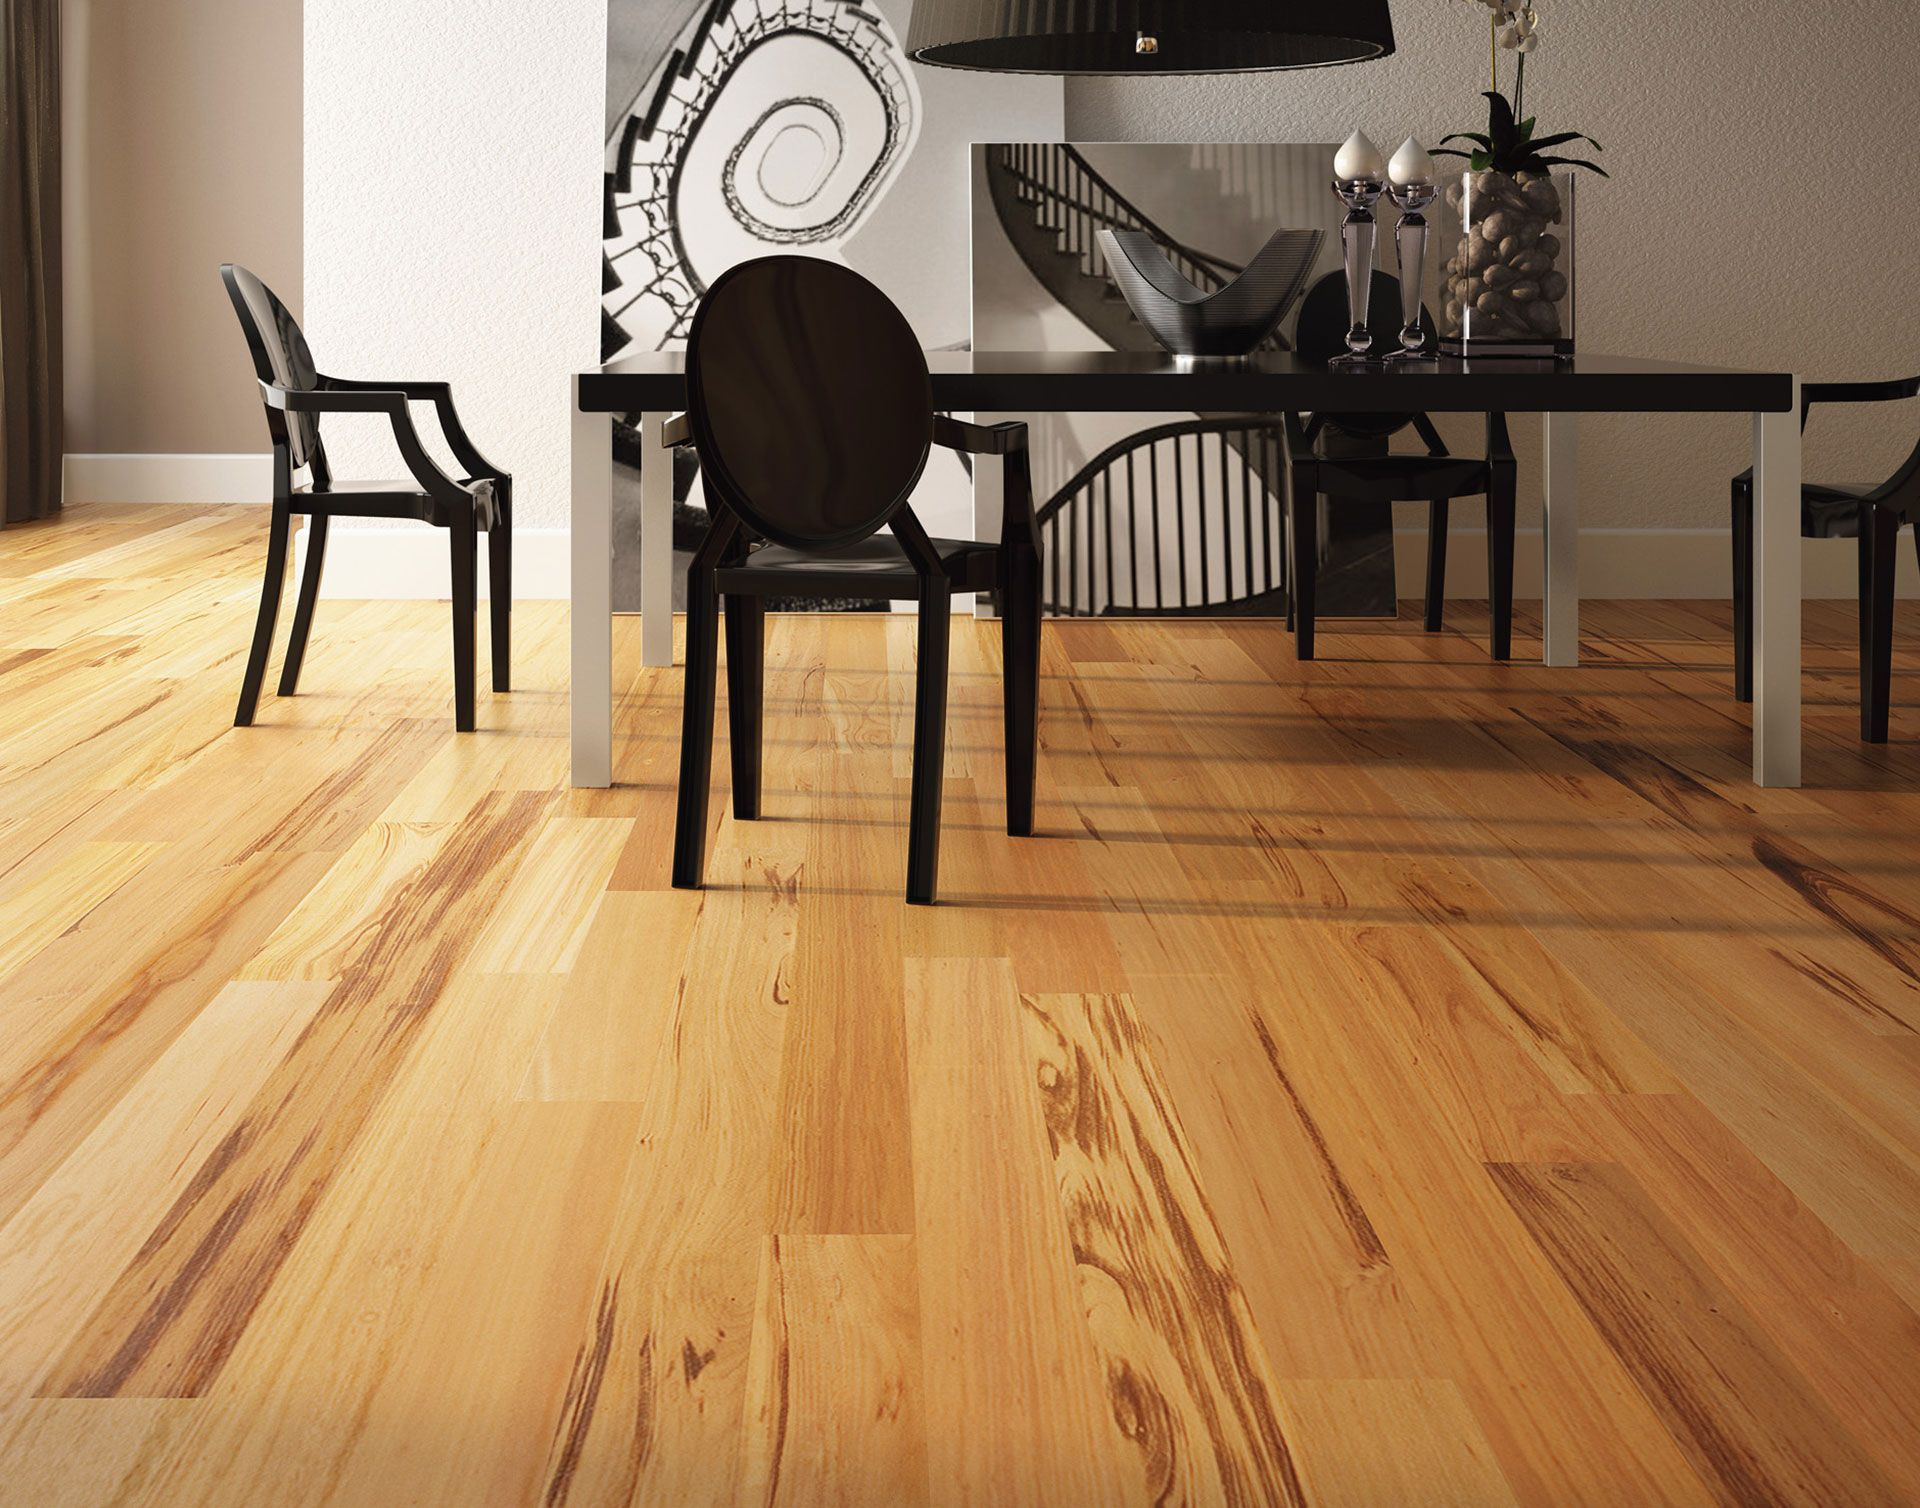 Clearance Hardwood Flooring toronto Of Breathtaking Real Hardwood Flooring Beautiful Floors are Here Only Regarding Breathtaking Real Hardwood Flooring Engineered for Interior Floor Decorating Idea Wall Decor with Dark Wood Chair